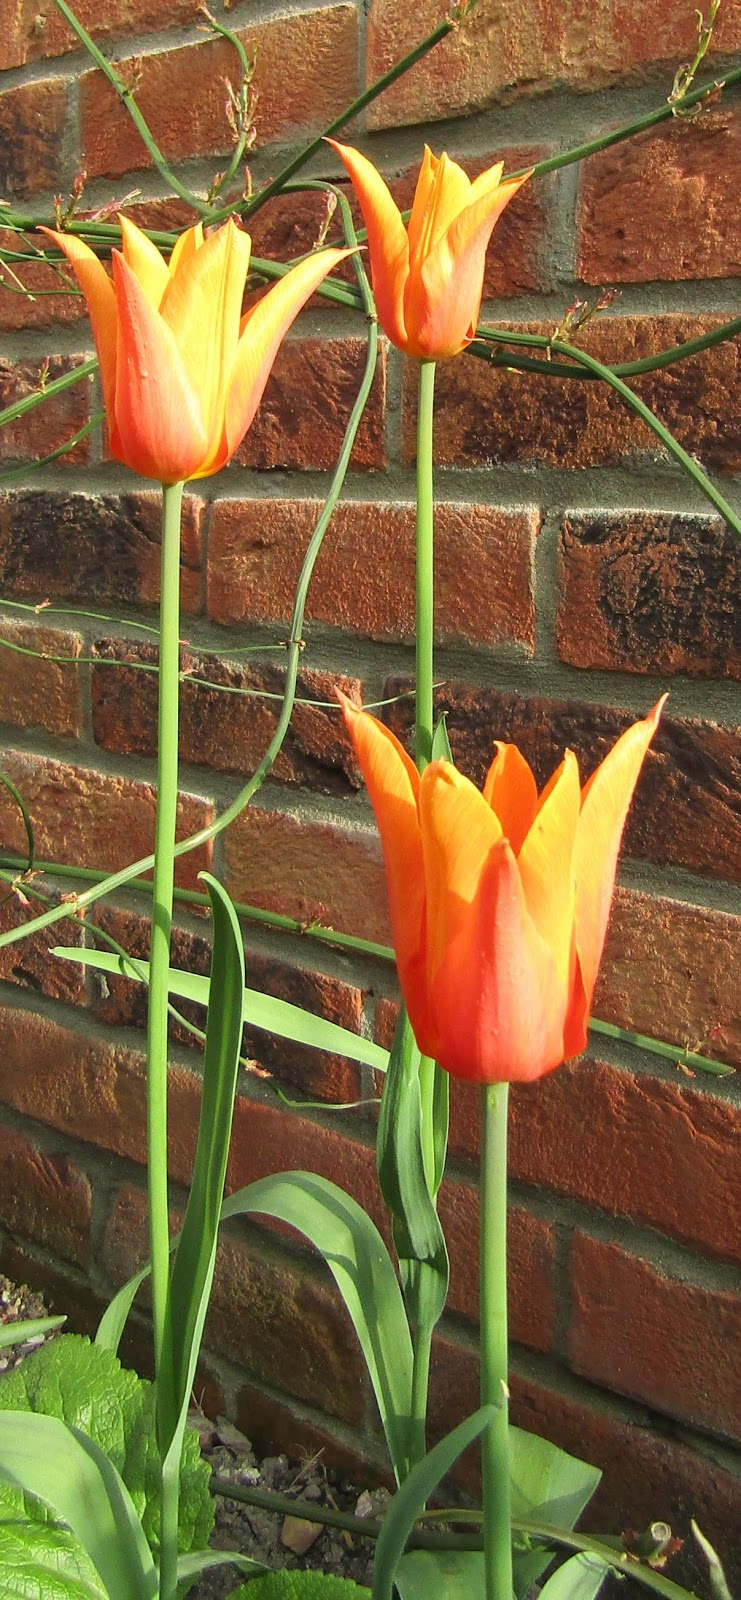 Feltabulous: The Spring Garden - tulip time (part one)